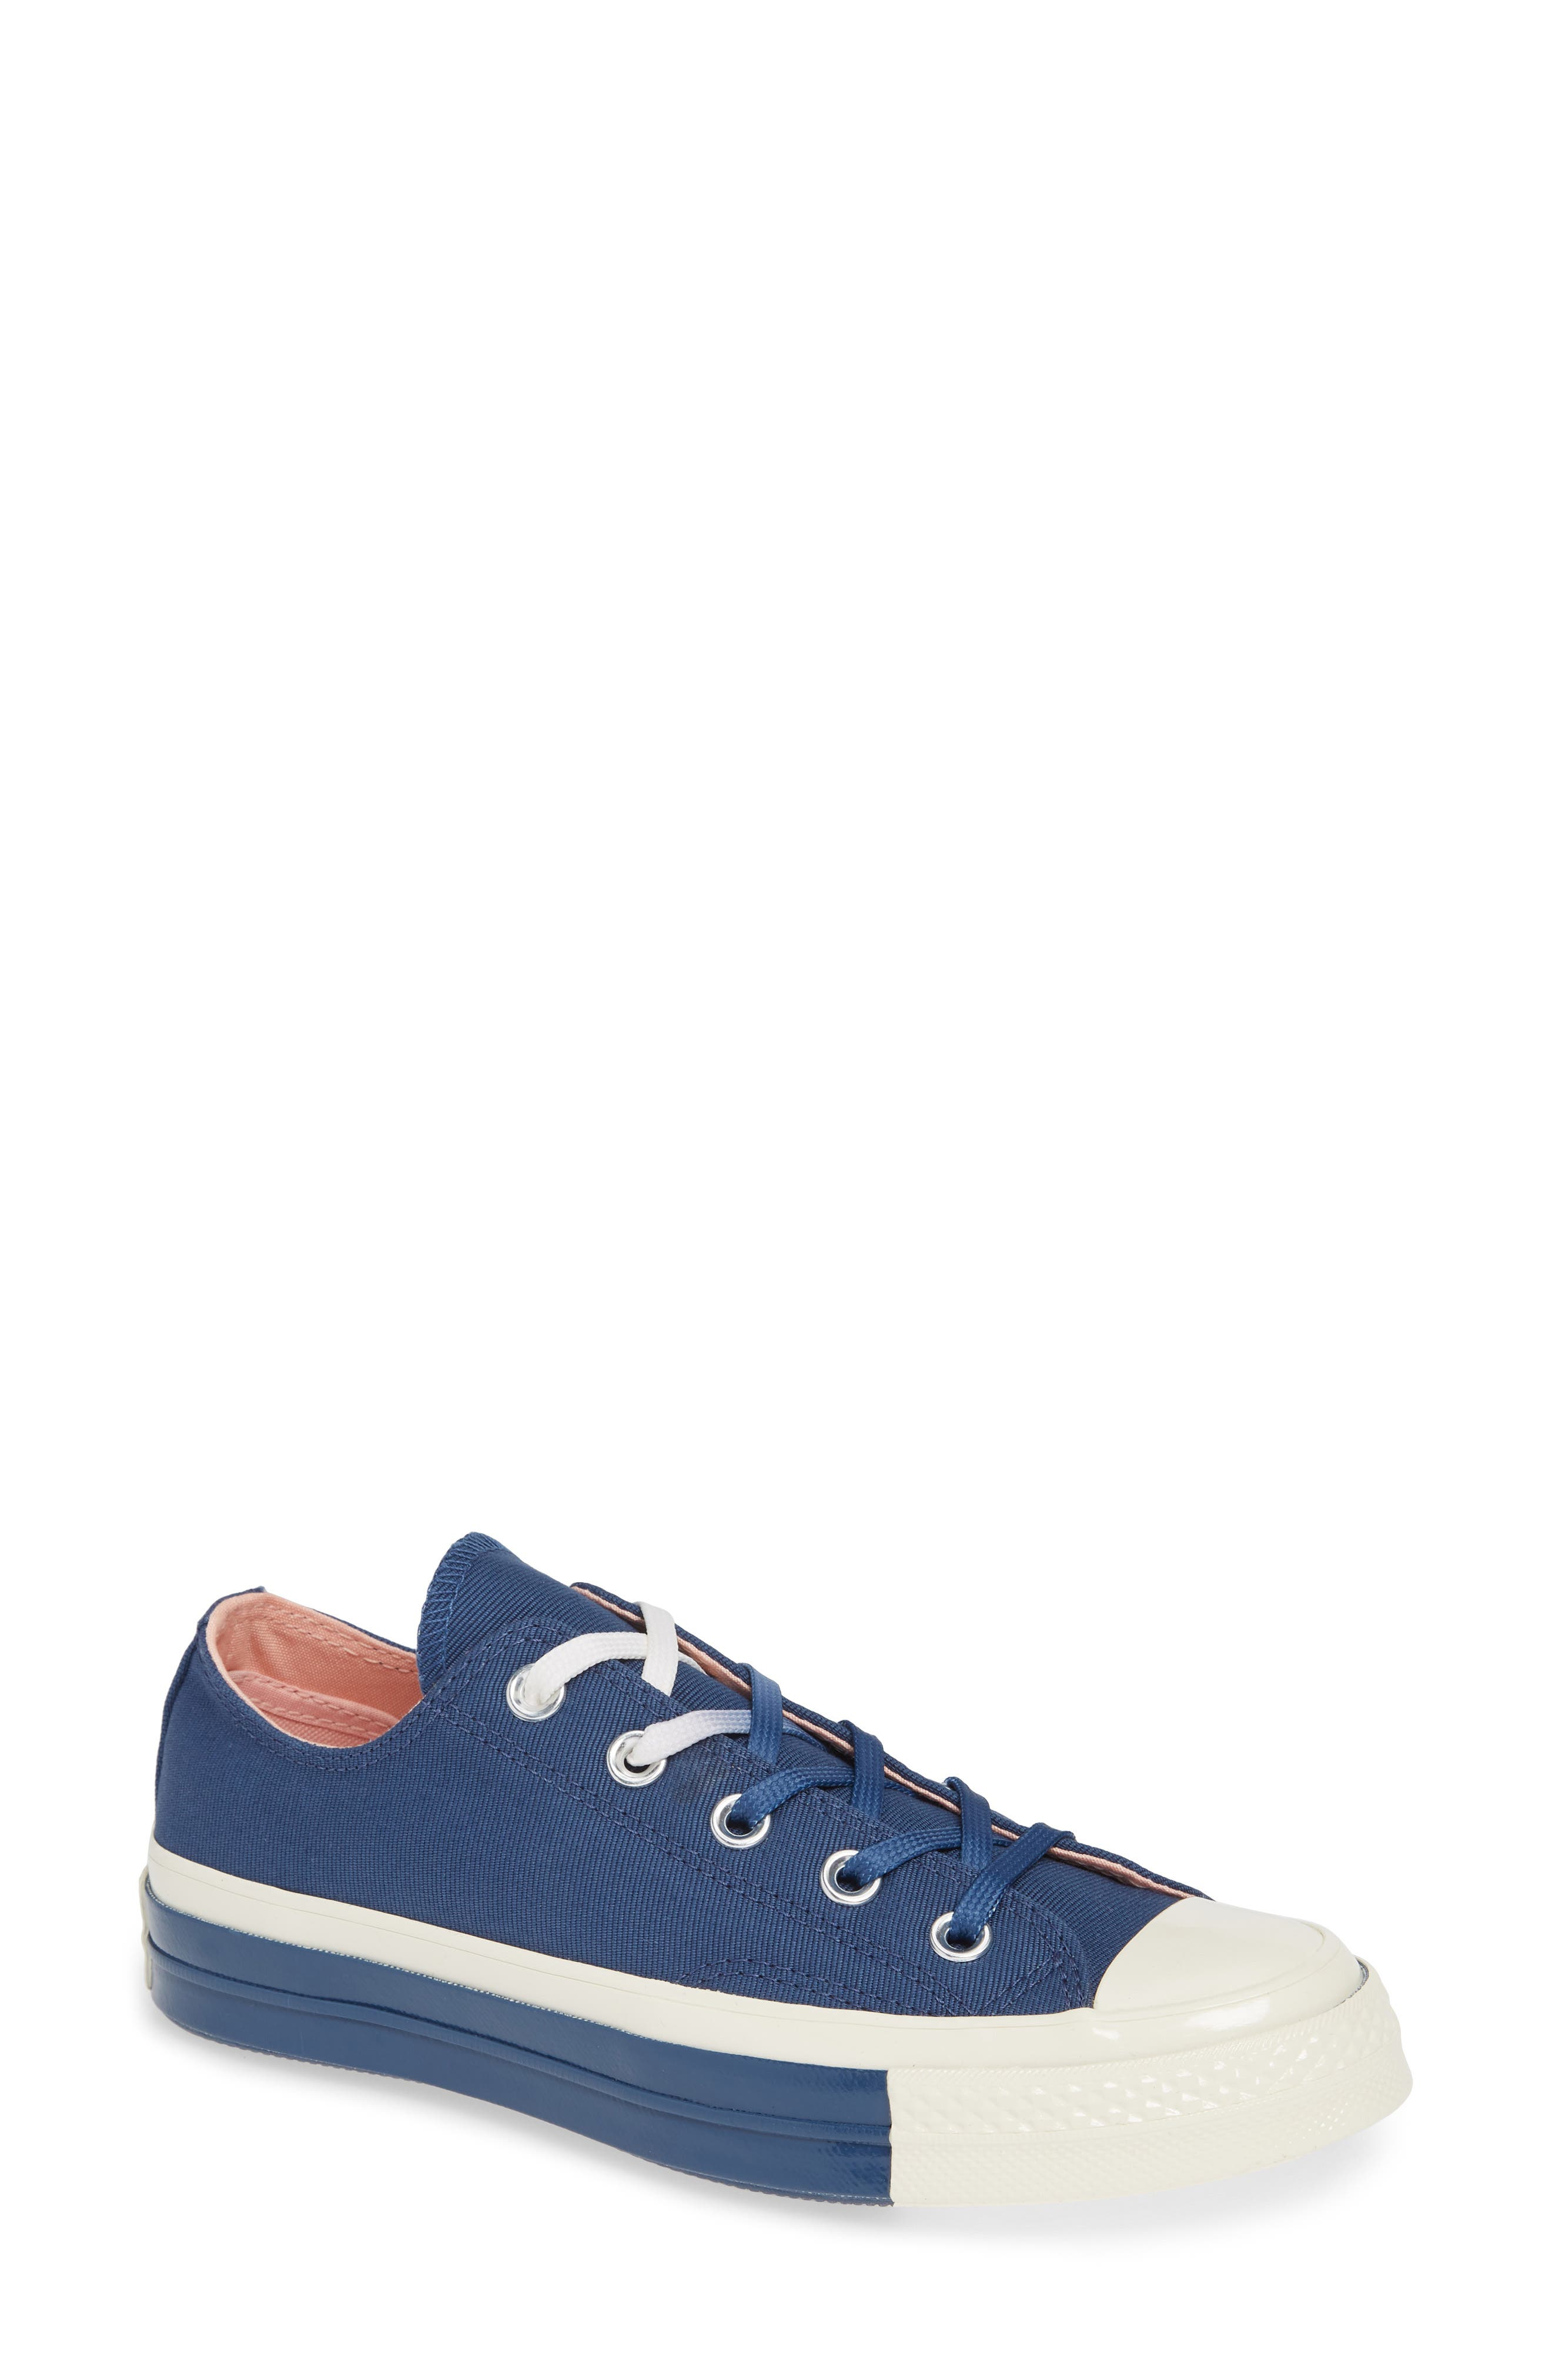 Chuck Taylor<sup>®</sup> All Star<sup>®</sup> 70 Colorblock Low Top Sneaker,                             Main thumbnail 1, color,                             MASON BLUE